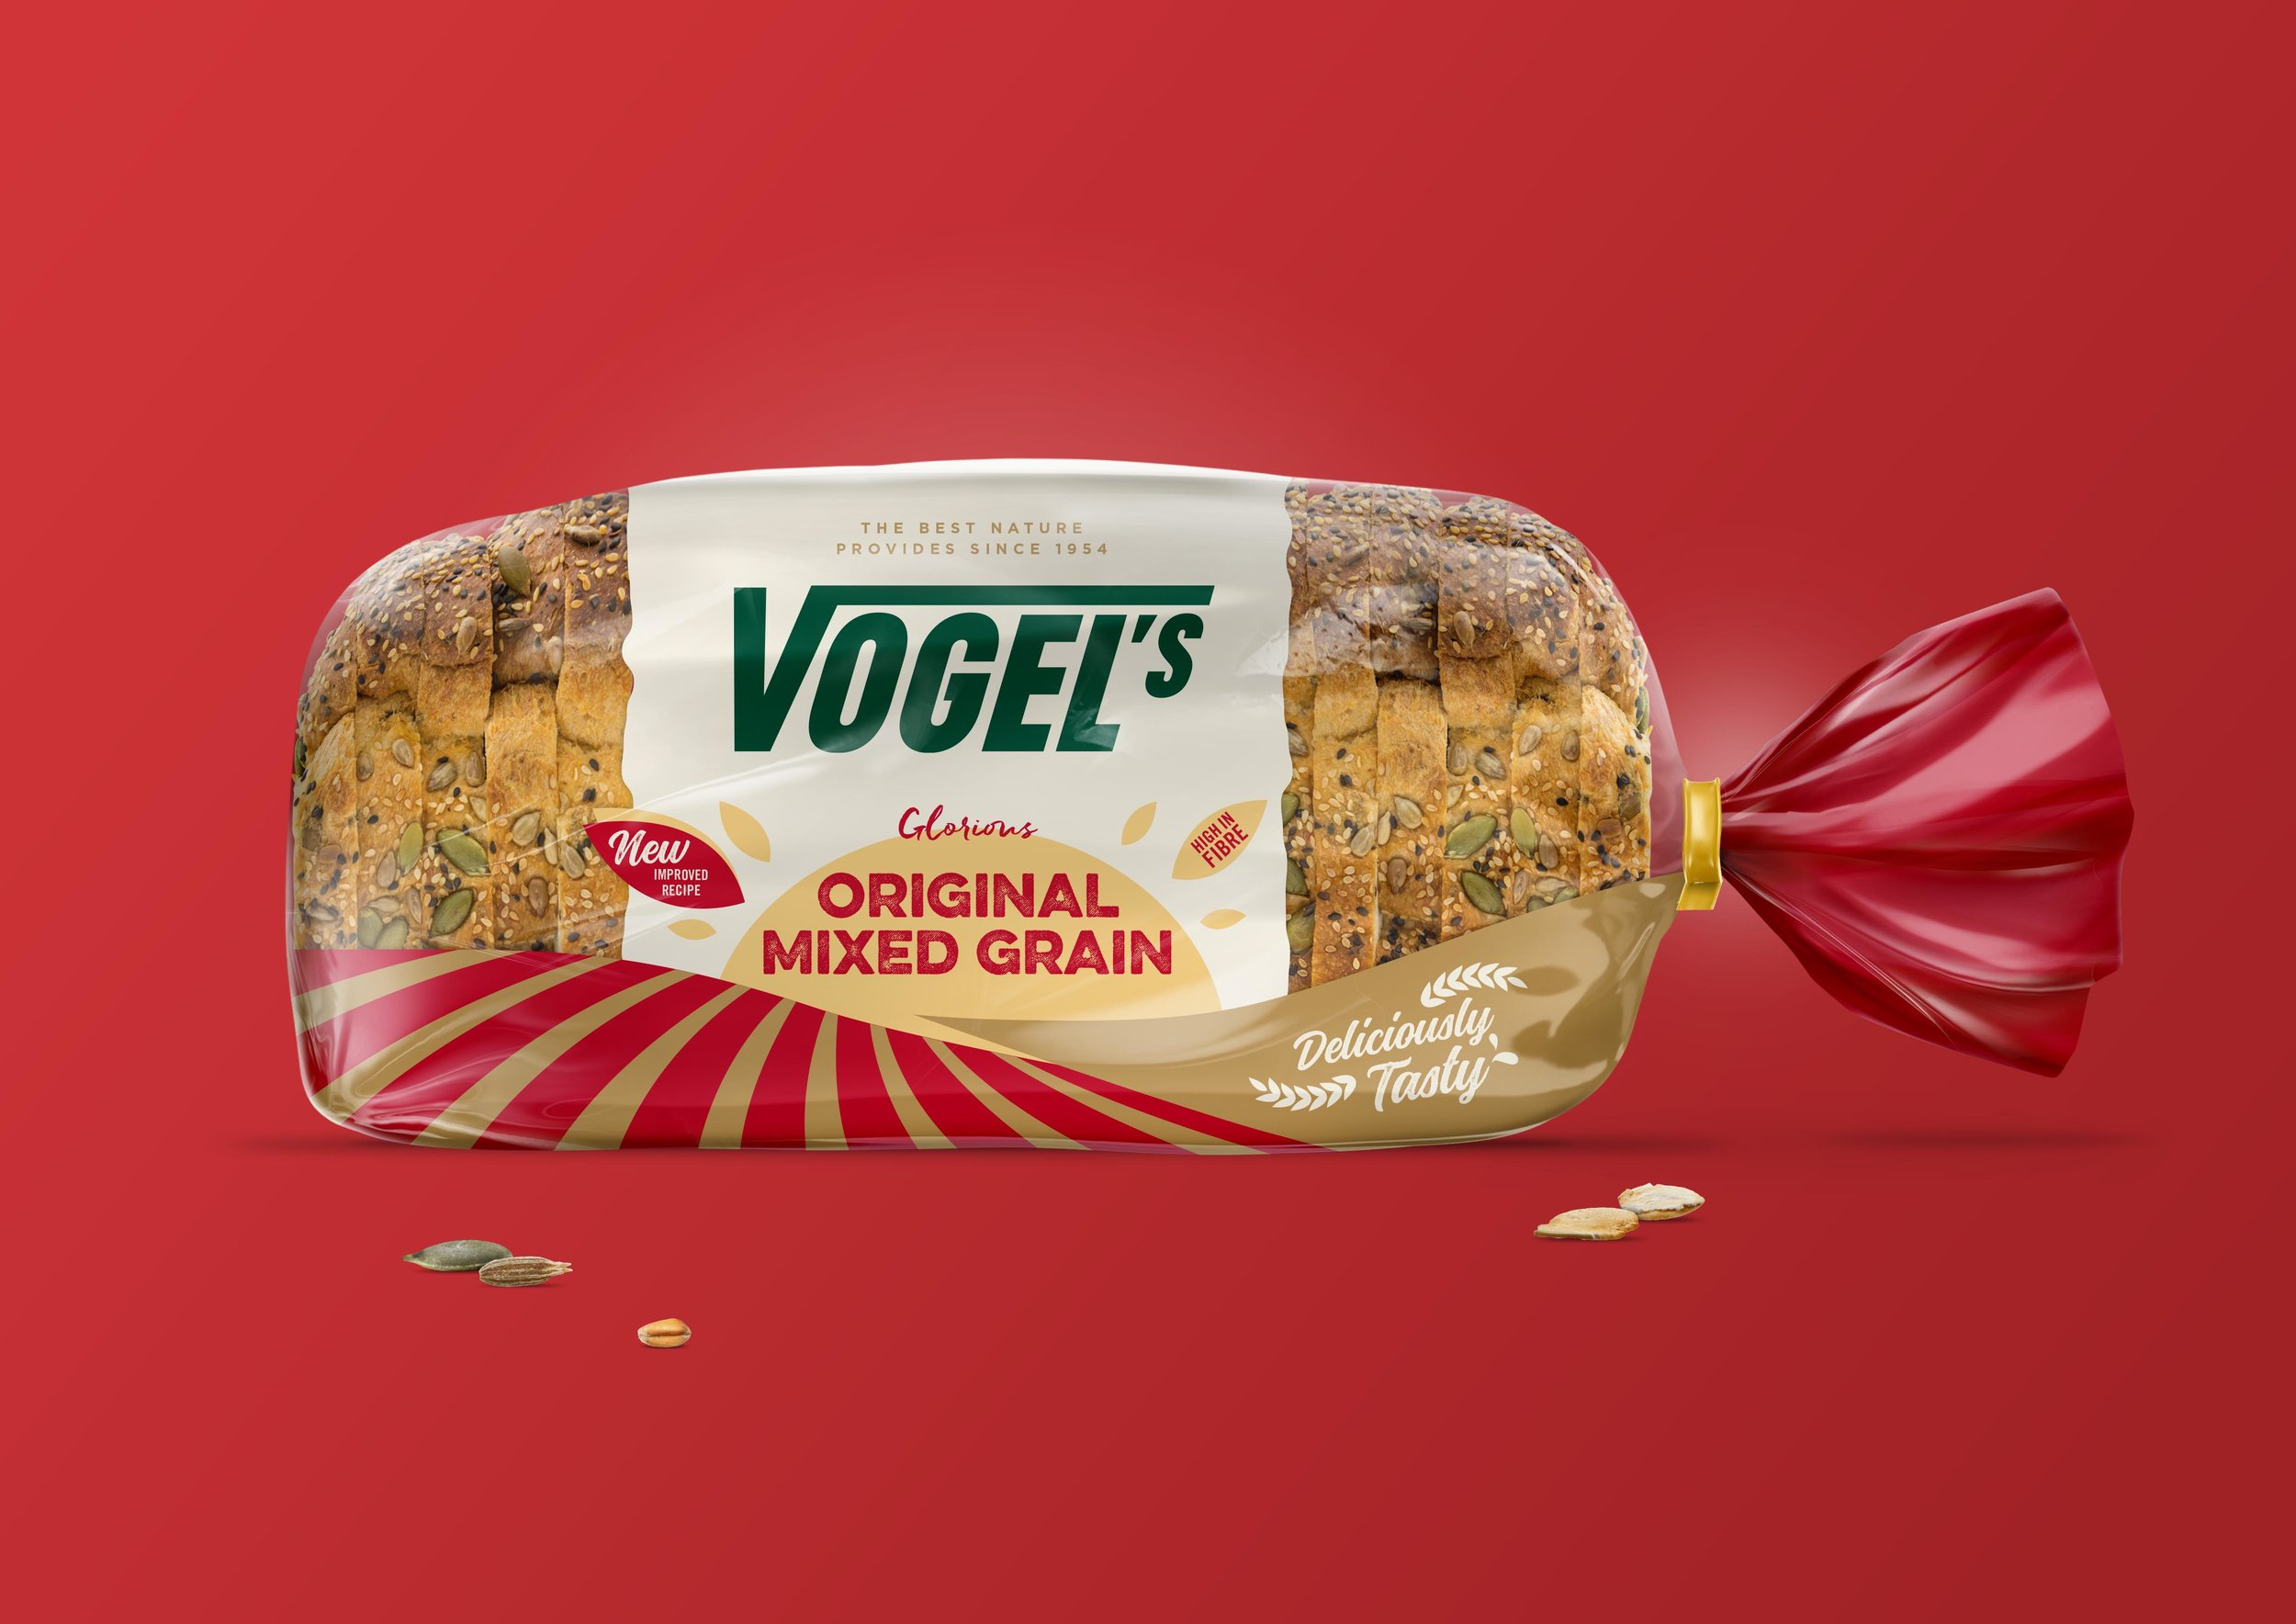 Vogel's Bread Packaging Design, At One with Nature